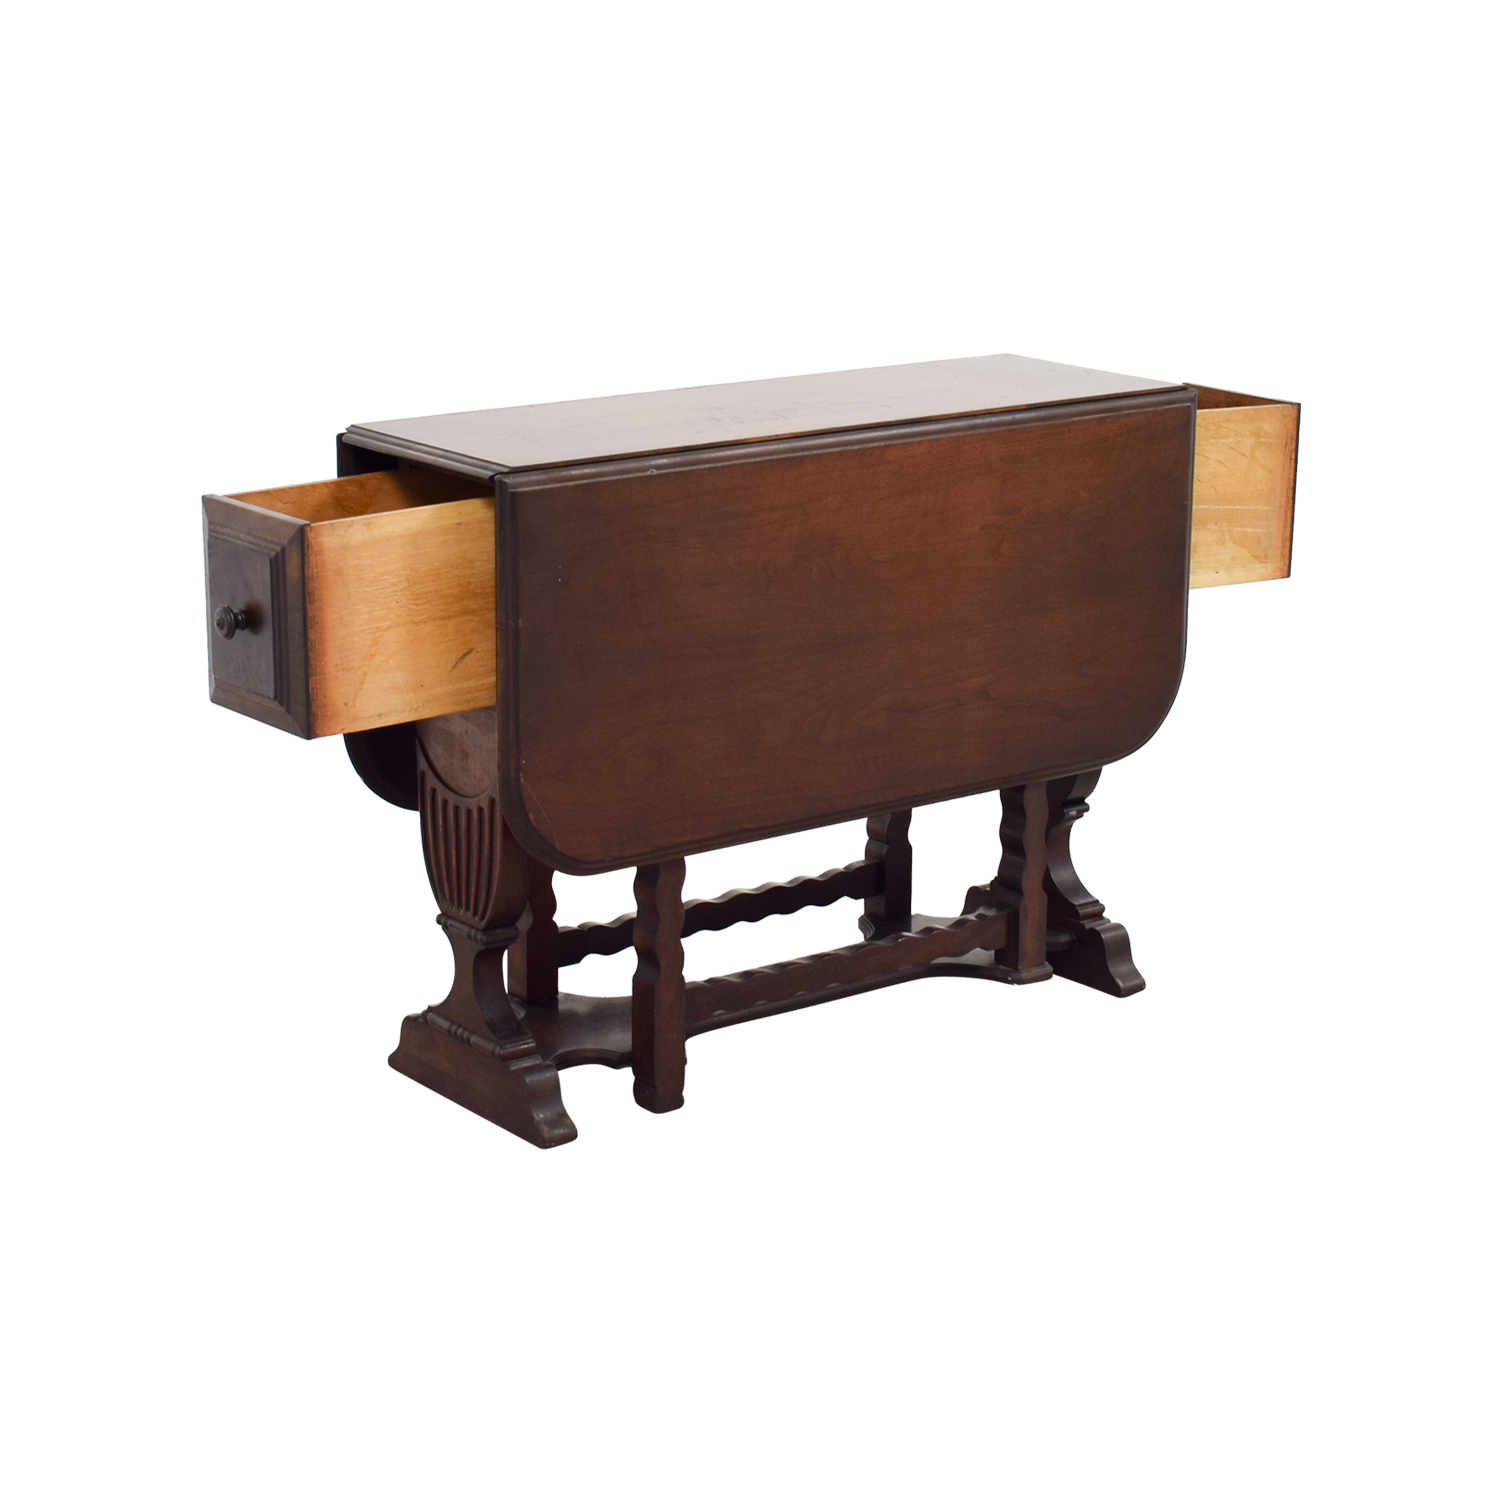 ... Buy 1950s Drop Leaf Table With Drawers Dinner Tables ...